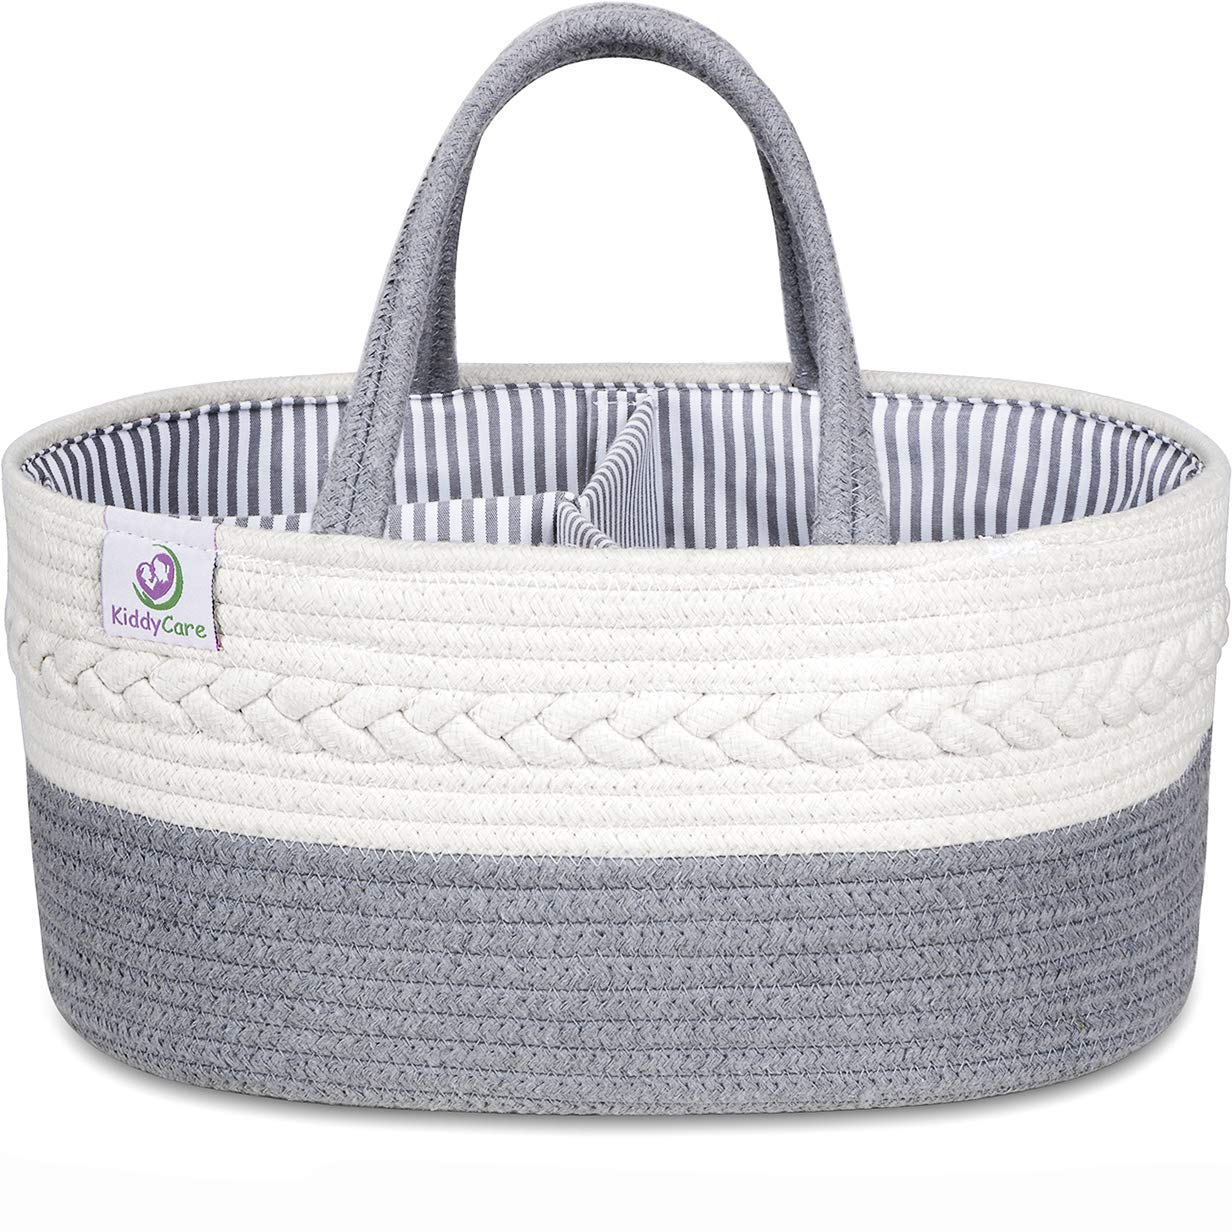 KiddyCare Baby Diaper Caddy Organizer - Stylish Rope Nursery Storage Bin - 100% Cotton Canvas Portable Diaper Storage Basket for Changing Table & Car - Top Baby Shower Gift for Boys & Girls by KiddyCare